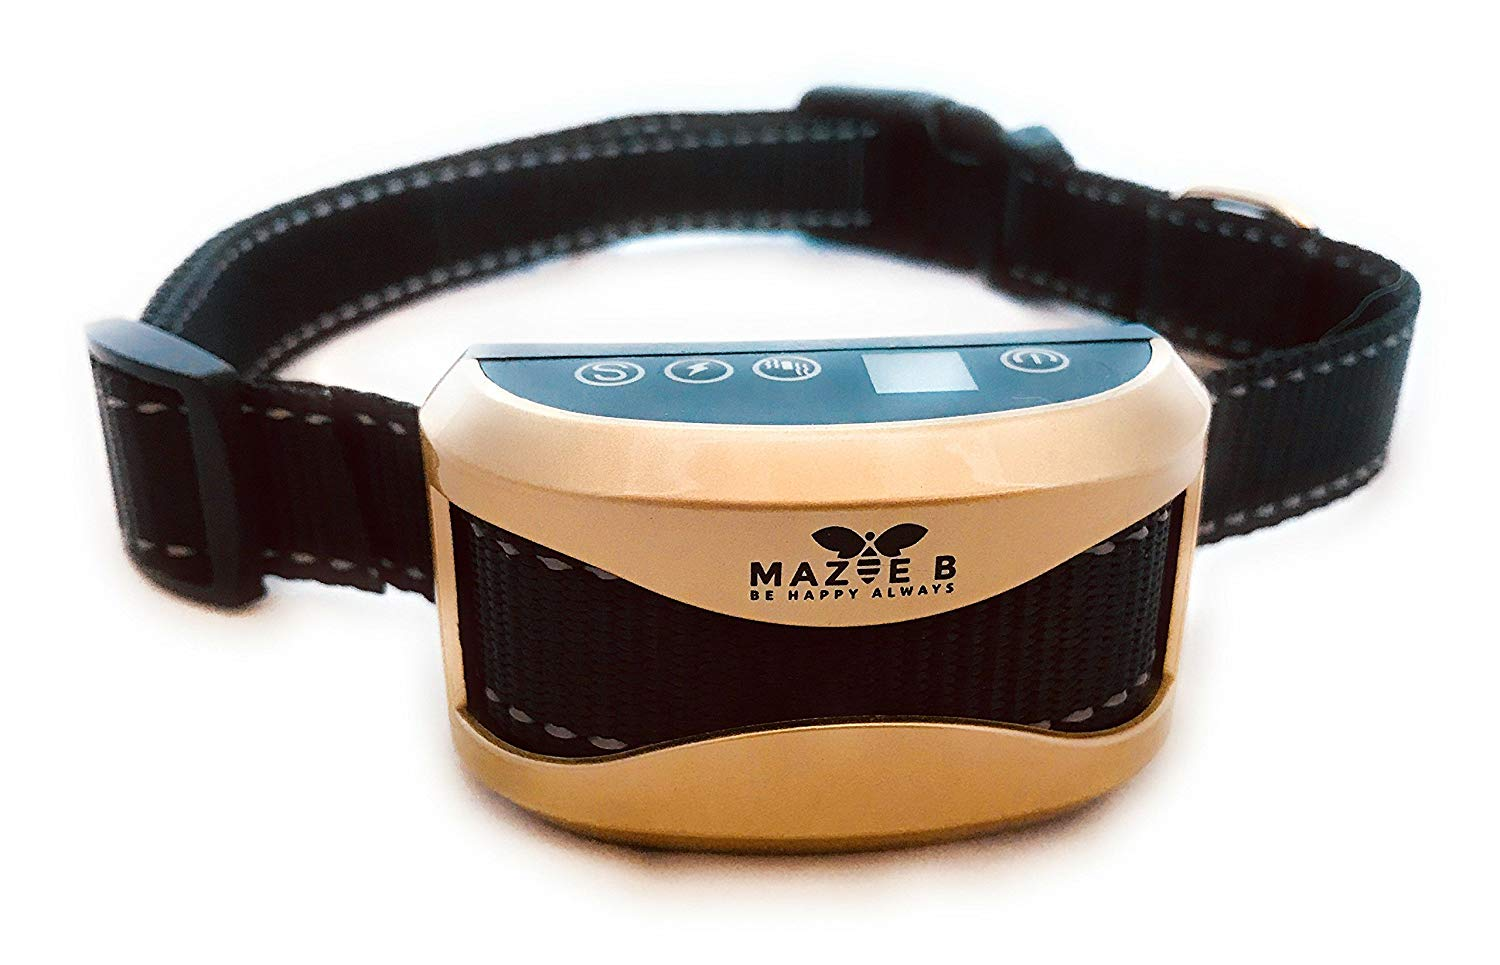 Mazie B Anti Bark Collar, Dog Barking Control Device,for dogs 10-120lbs, 2018 Highest Grade Electronics, No Harm Shock, FREE Training Guide with 3-week Training Plan